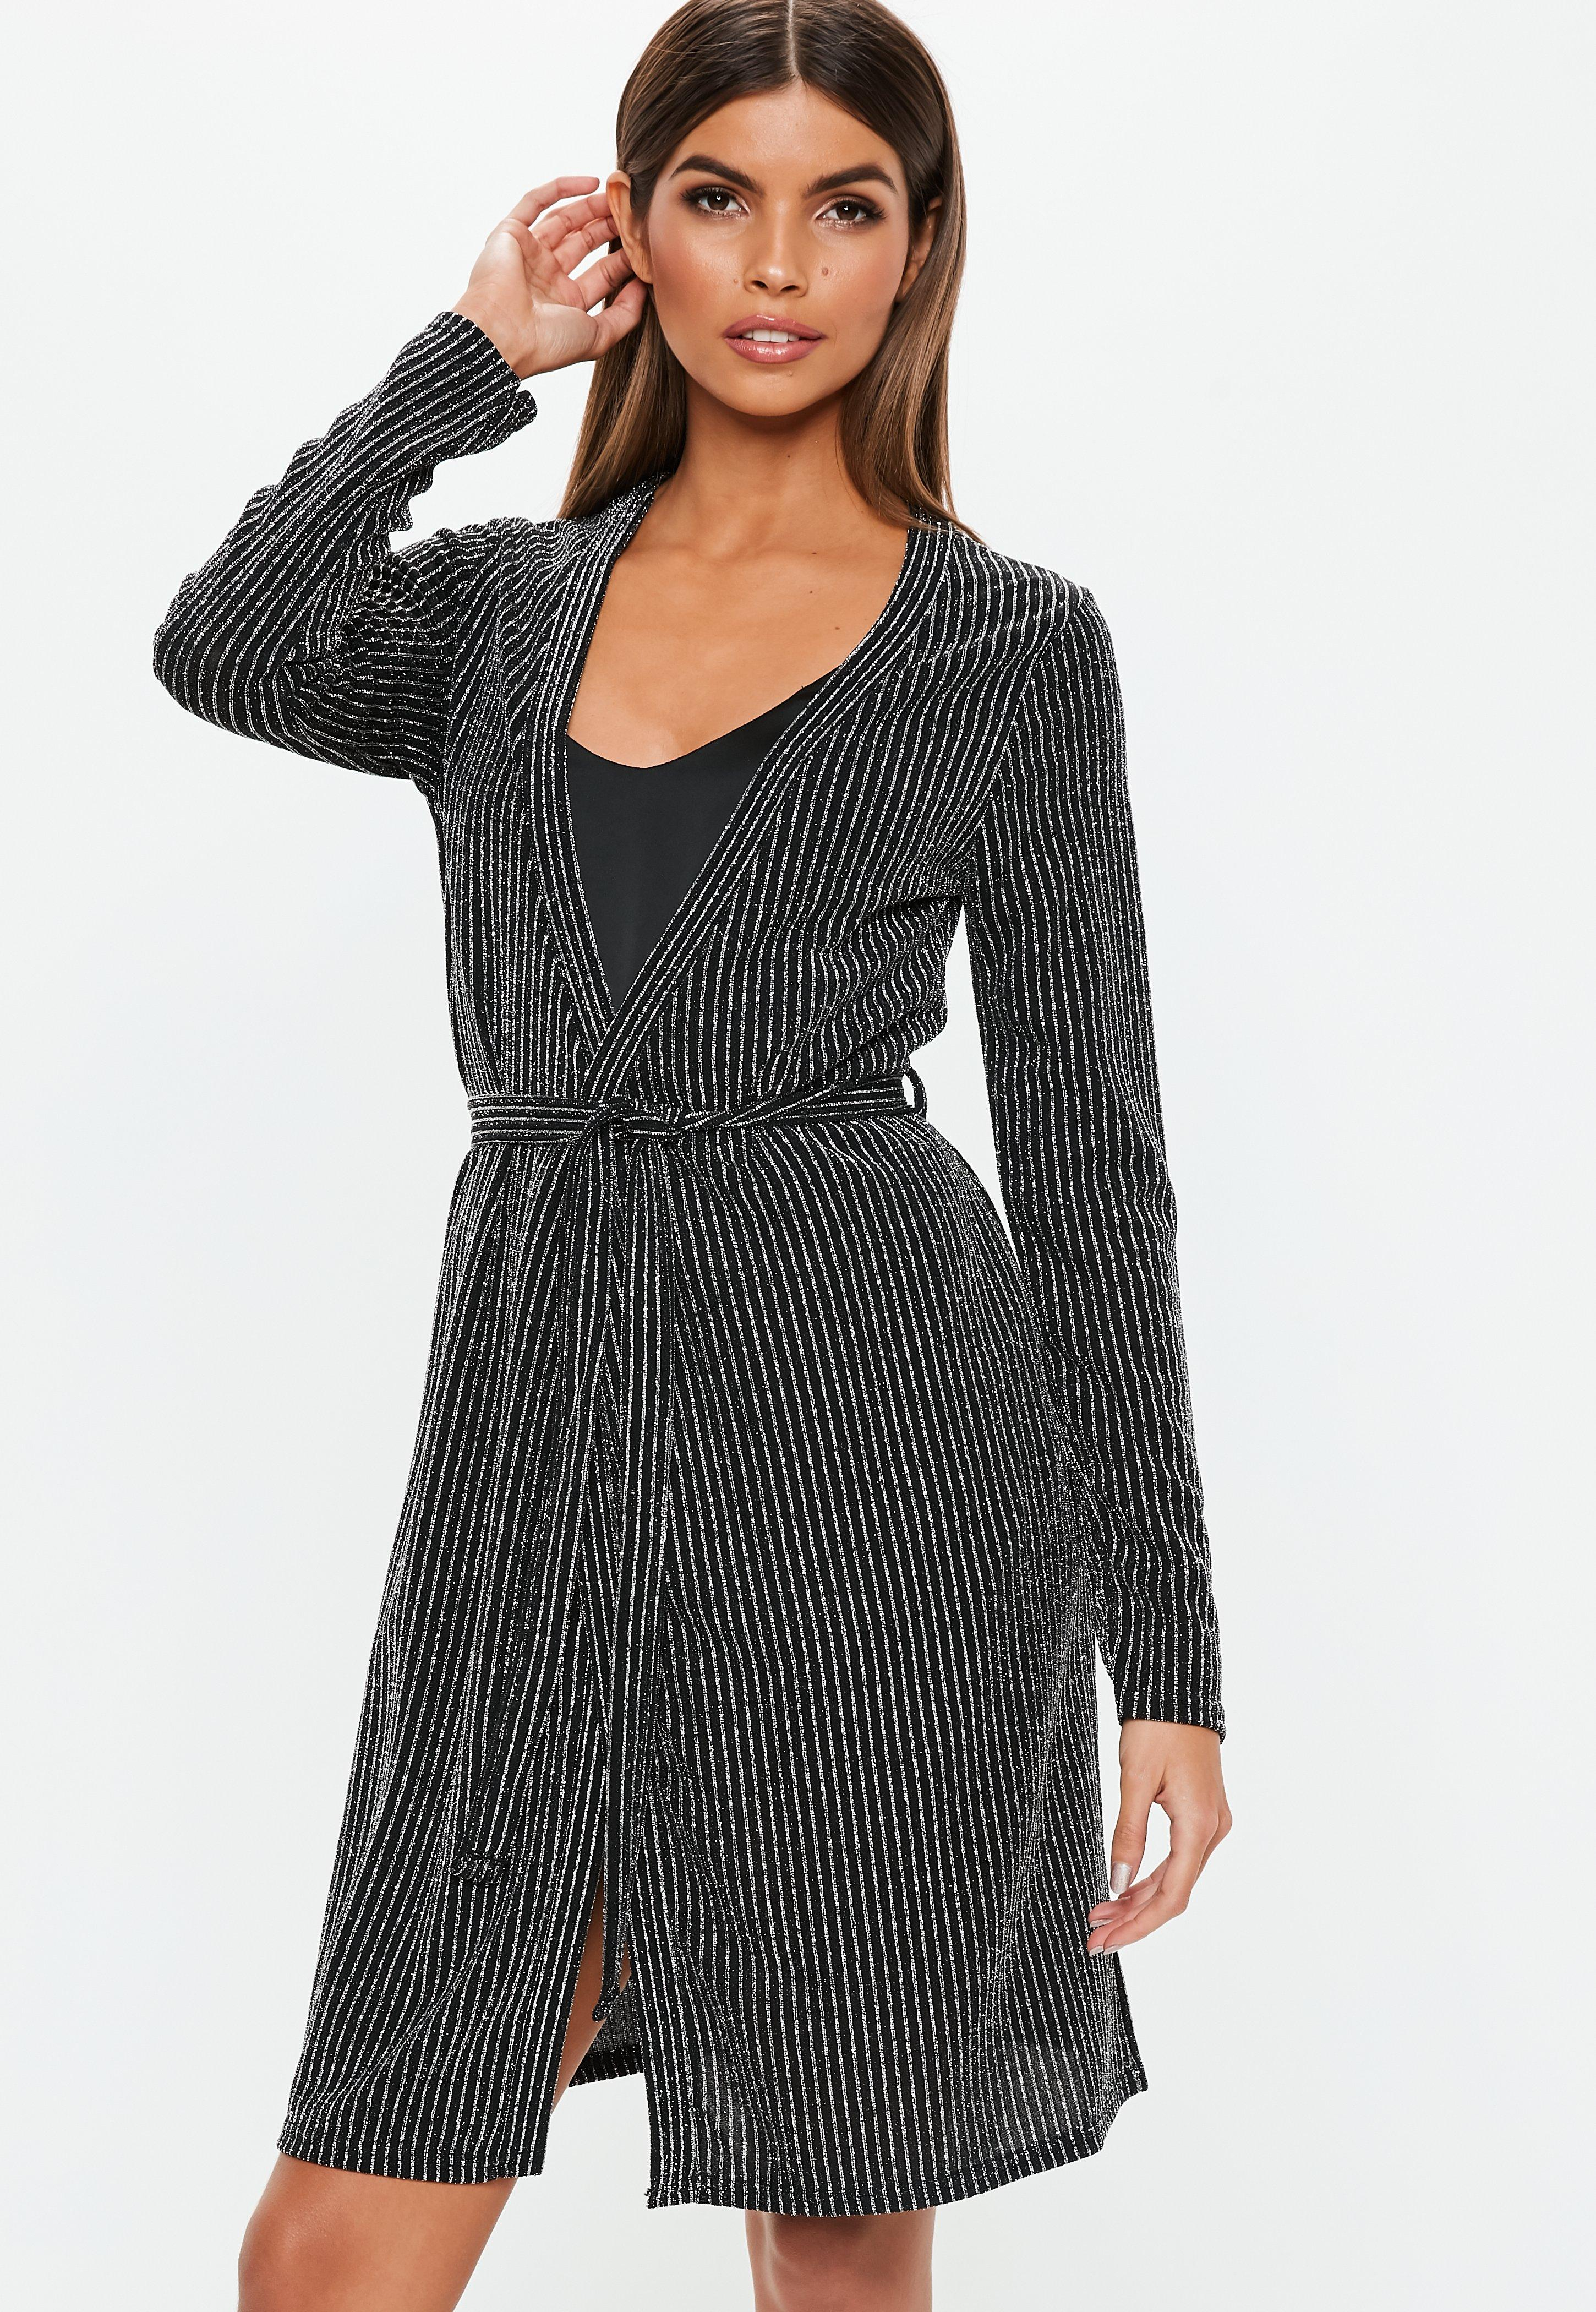 a6ed8ad13 Clothes Sale - Women s Cheap Clothes UK - Missguided